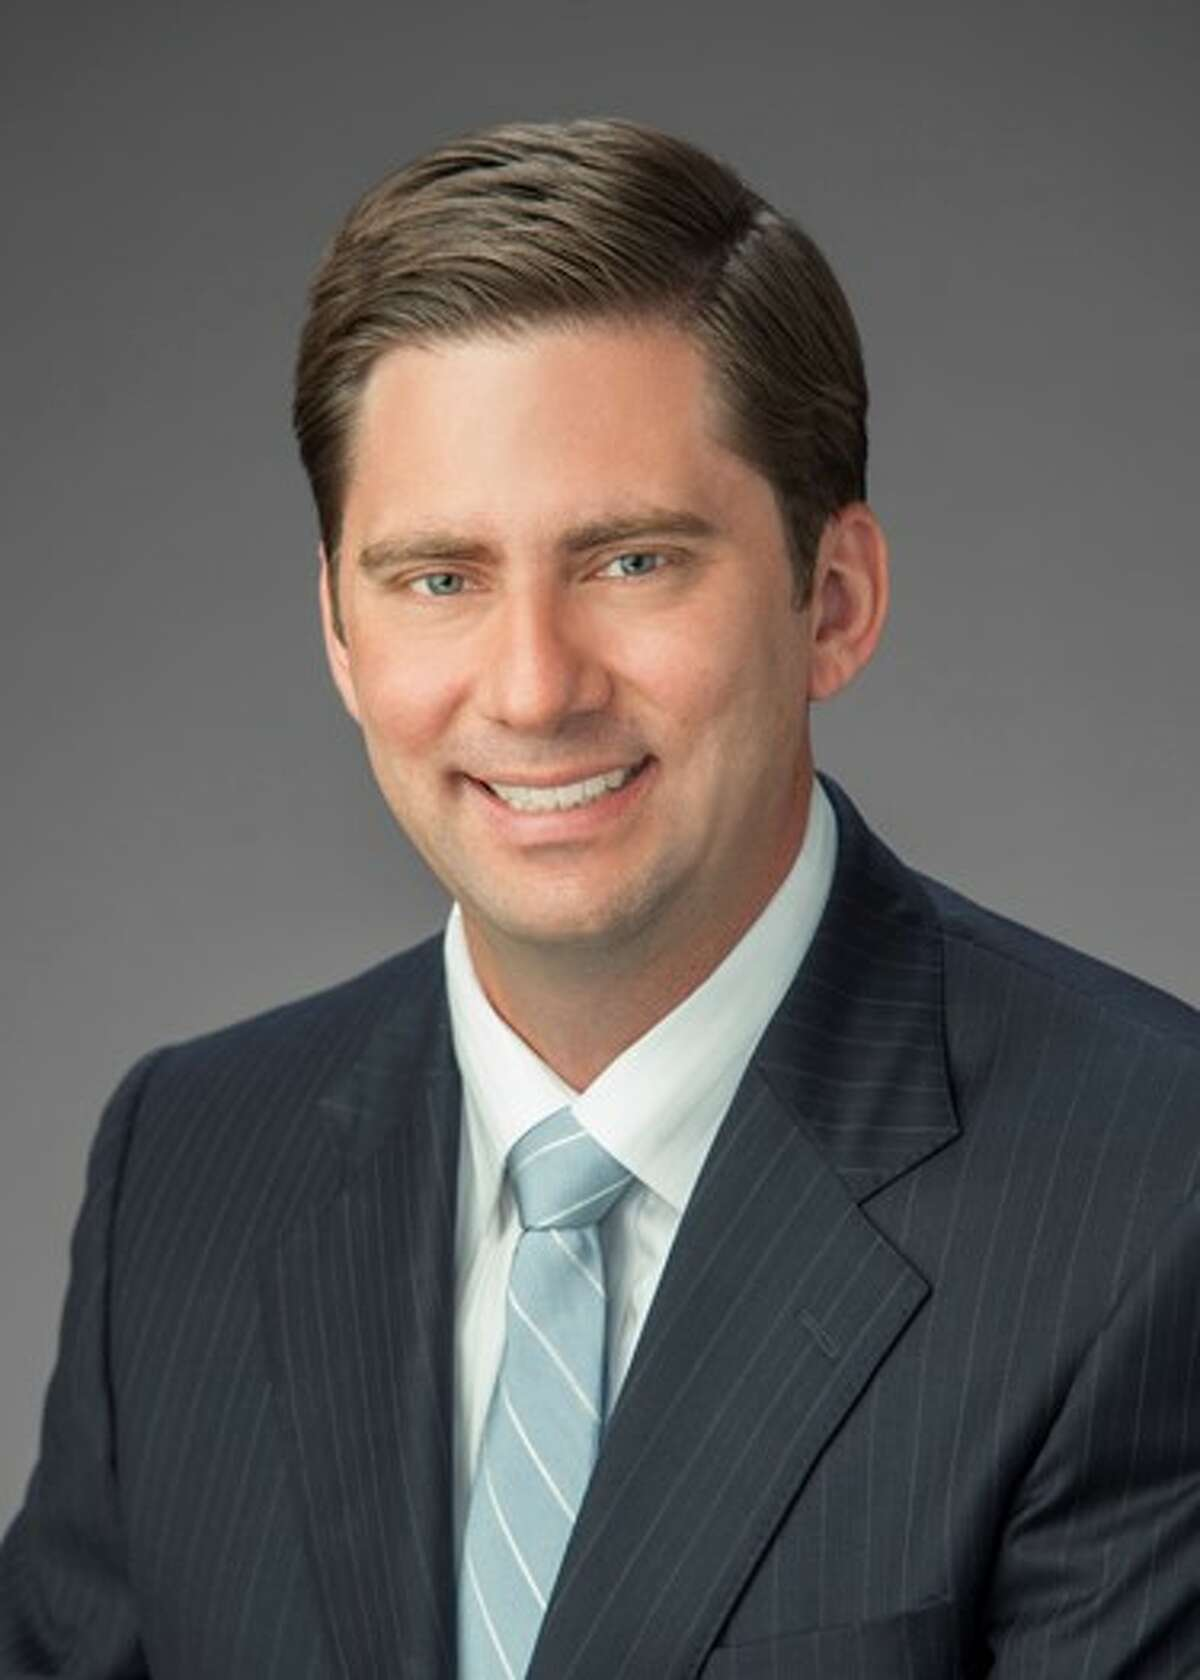 Ricardo Rivas, as chief investment officer of Allied Orion Group, has been named a principal of the multifamily investment, development and management firm.